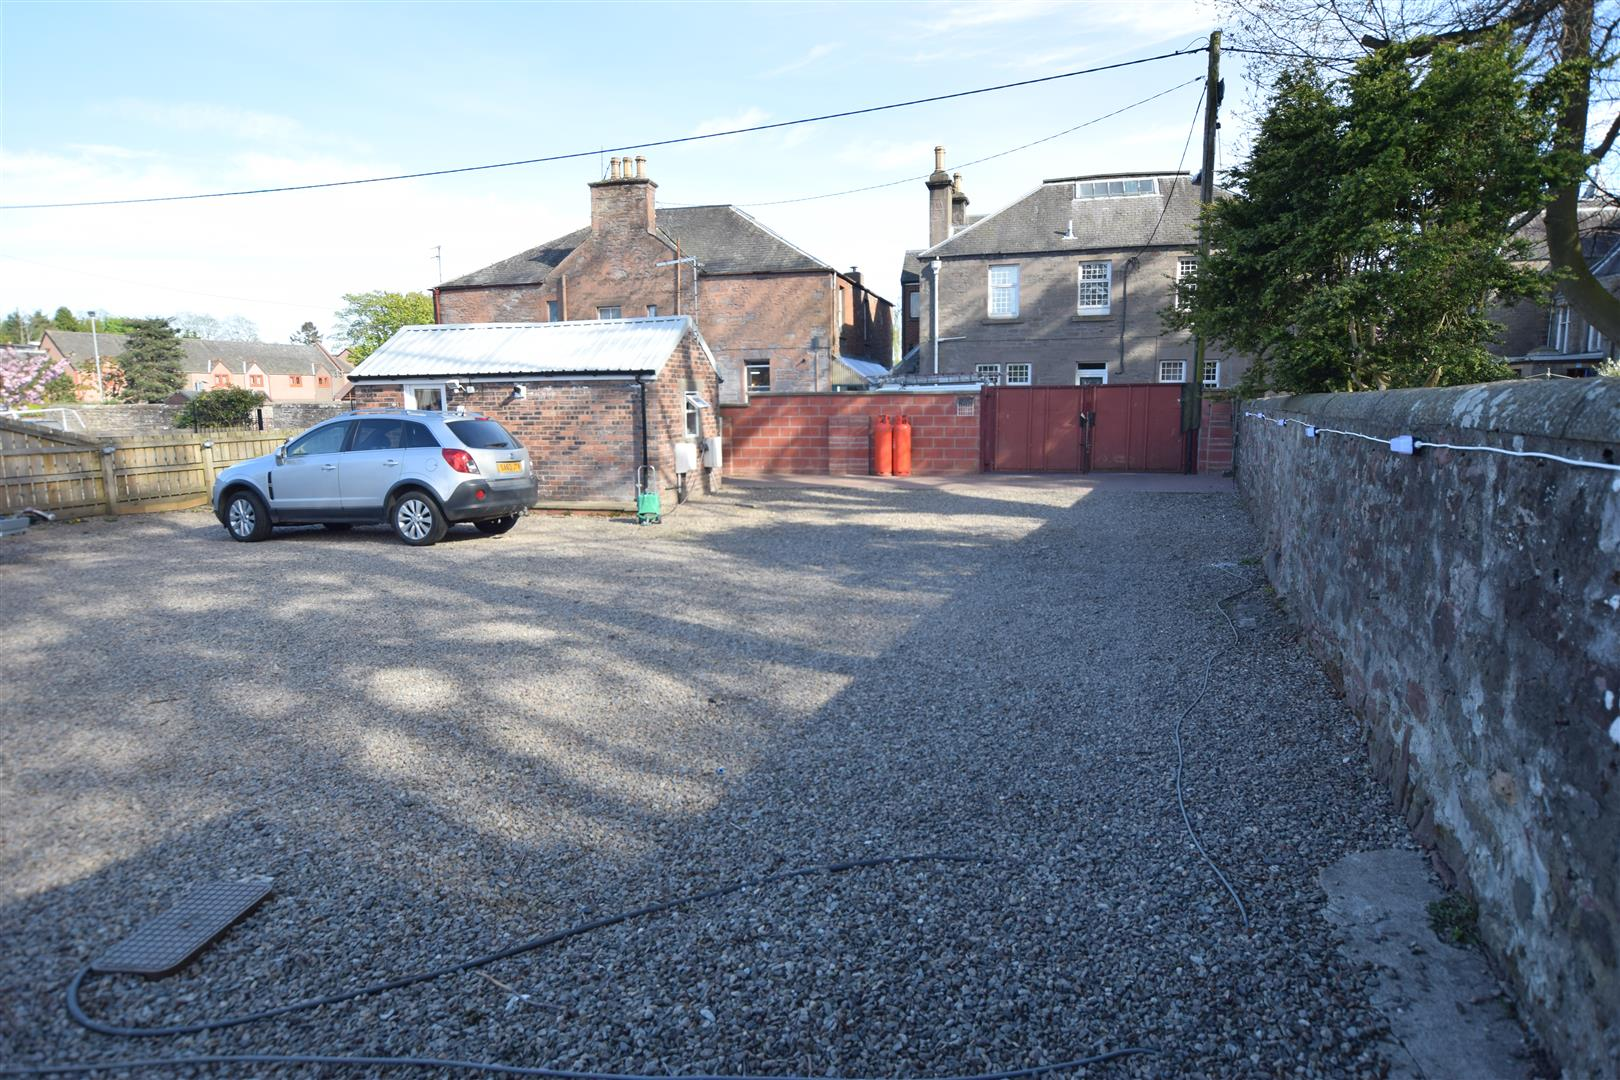 Plot, Calton Street, Coupar Angus, Blairgowrie, Perthshire, PH13 9BJ, UK